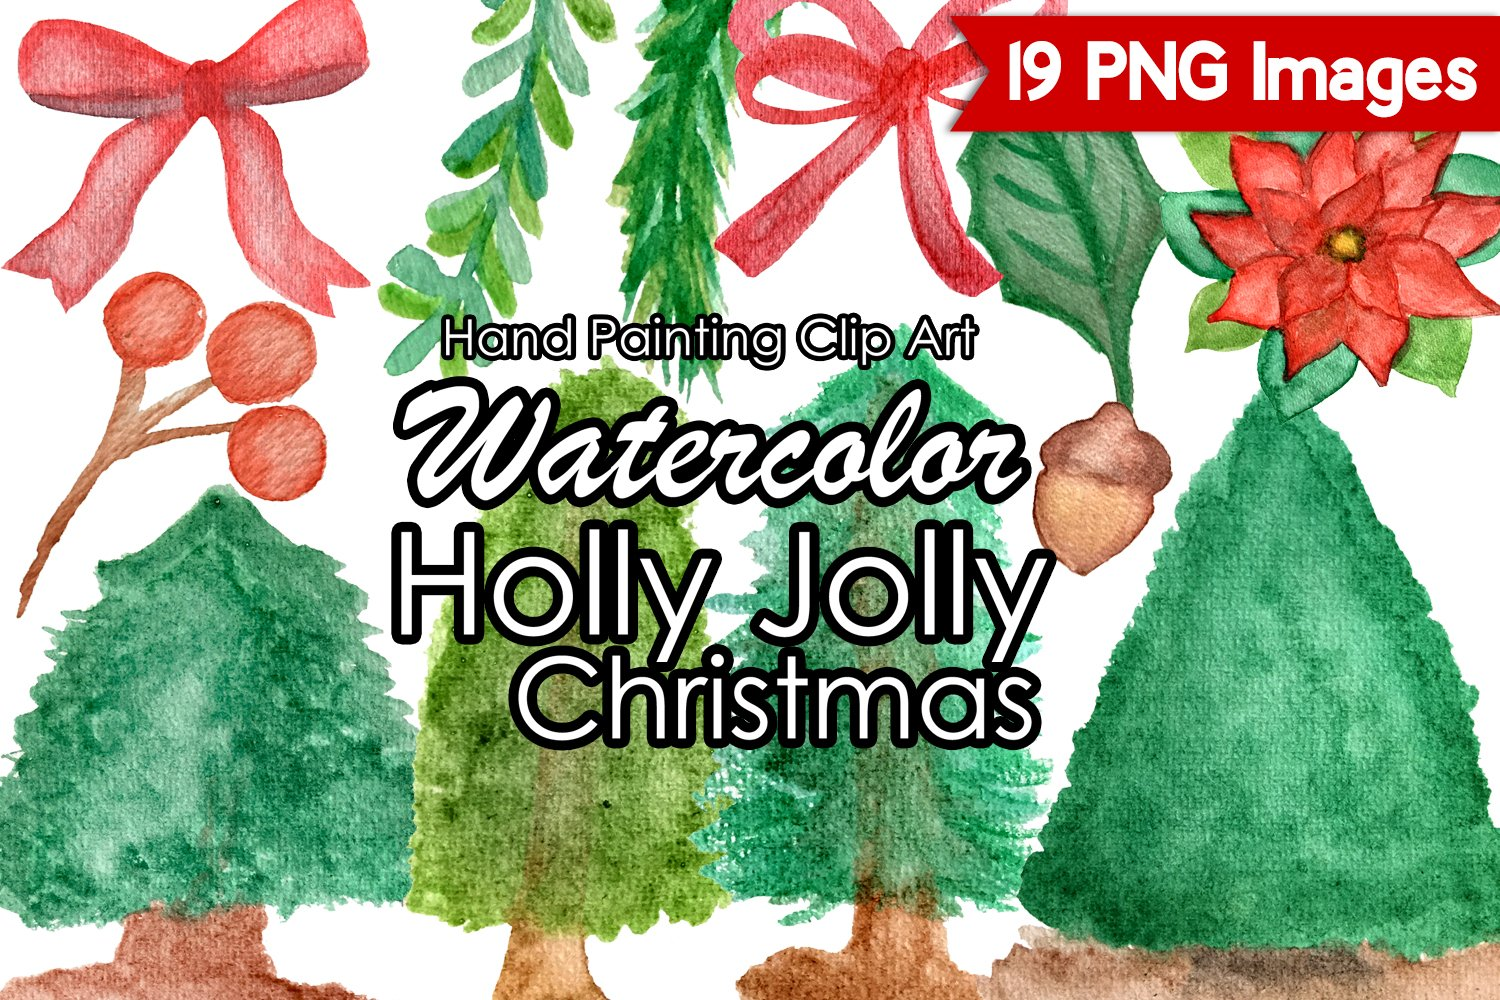 watercolor christmas clipart holly jolly christmas clip art 403765 patterns design bundles watercolor christmas clipart holly jolly christmas clip art